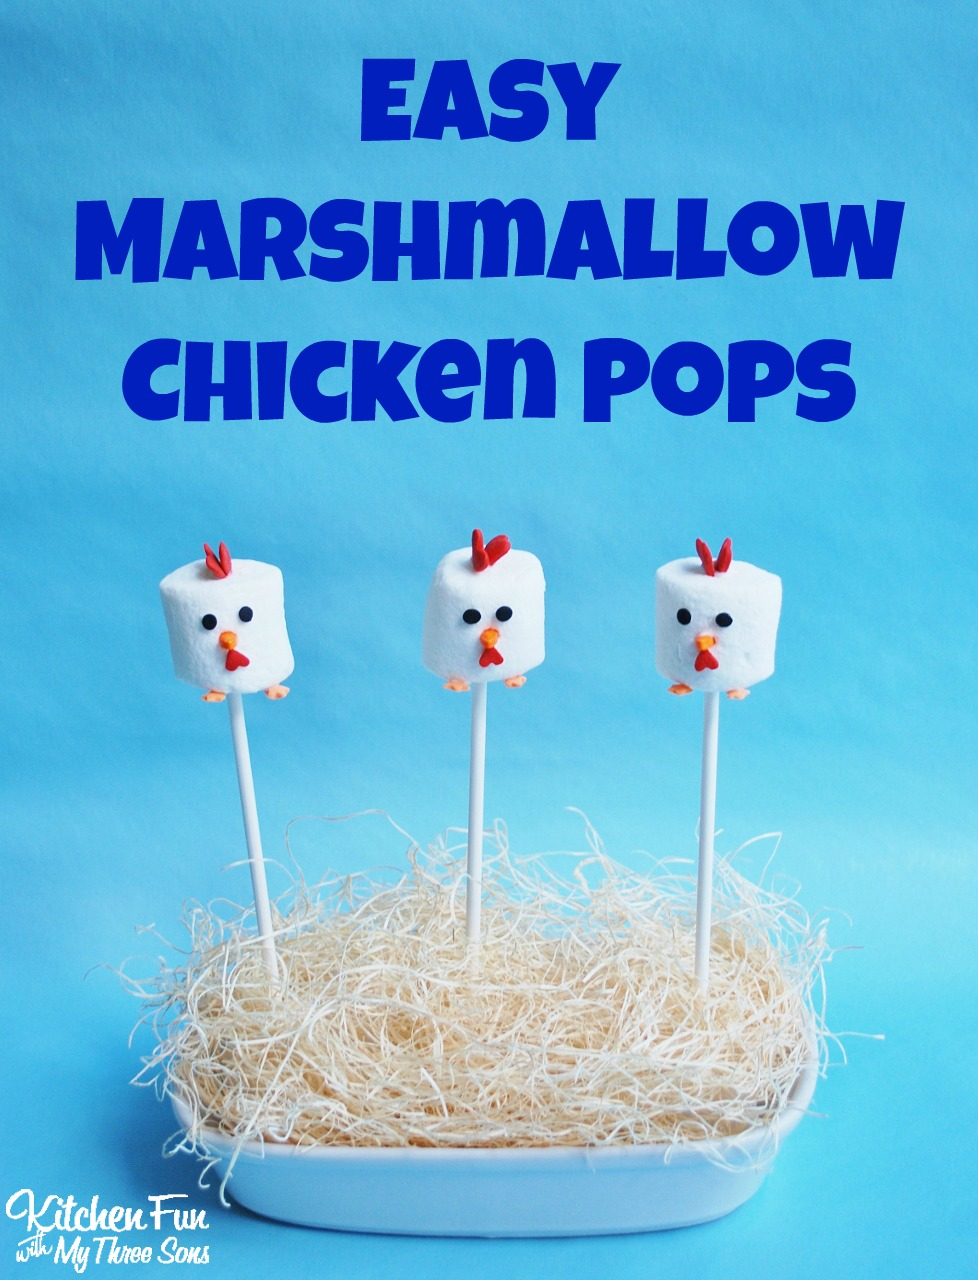 Easy Marshmallow Chicken Pops...these take minutes to make! KitchenFunWithMy3Sons.com